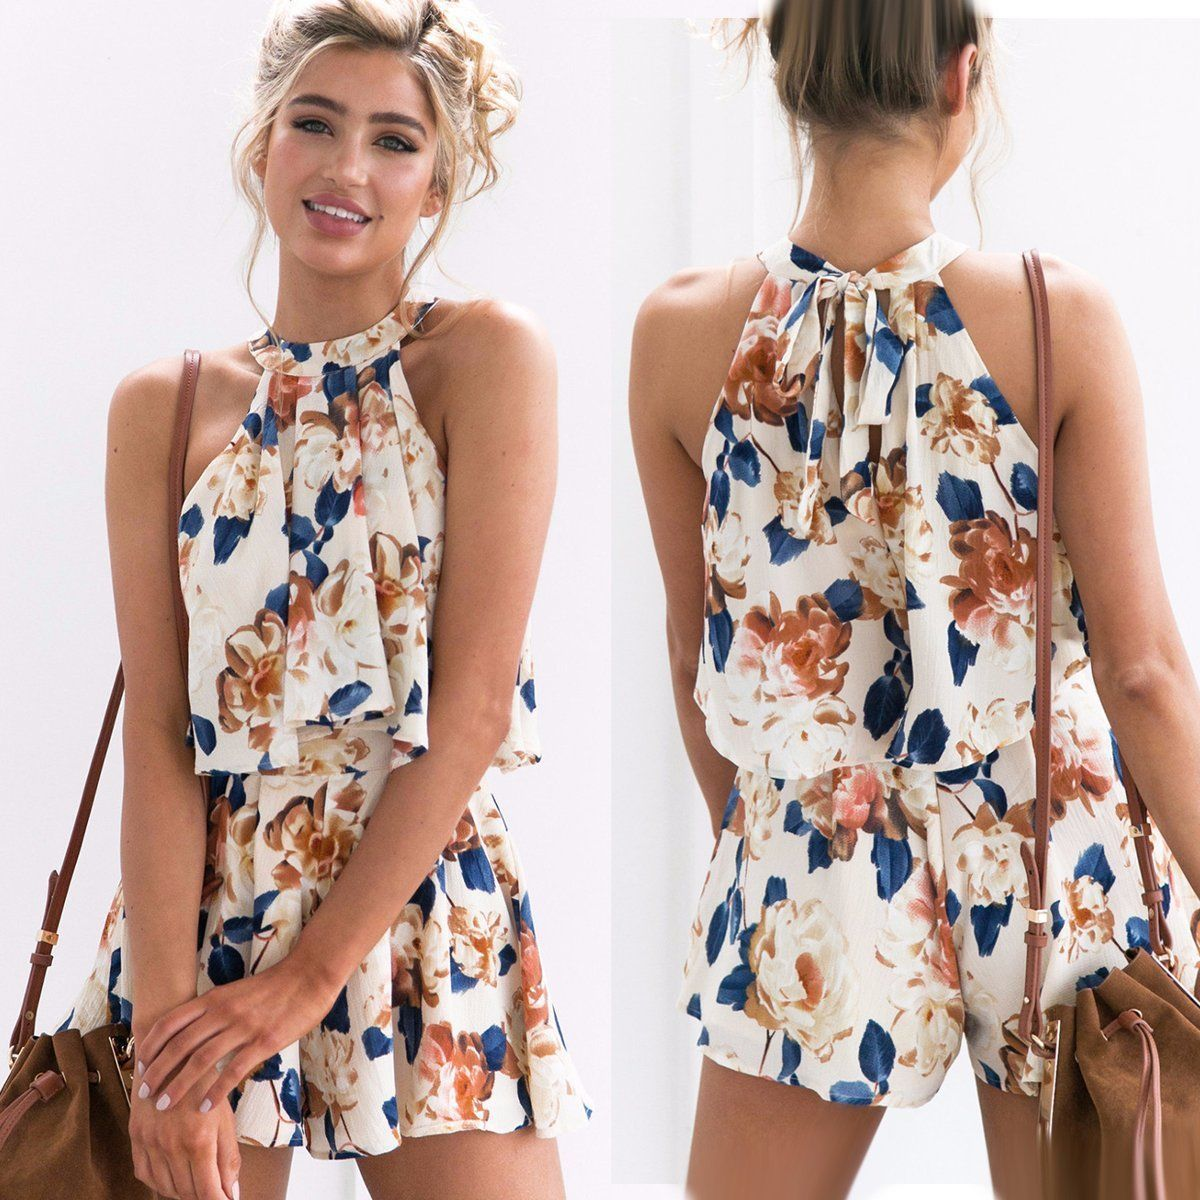 806a3c73bb4 Summer Womens Party Club Playsuit Rompers Beach Sun Dress Casual Jumpsuit  Shorts